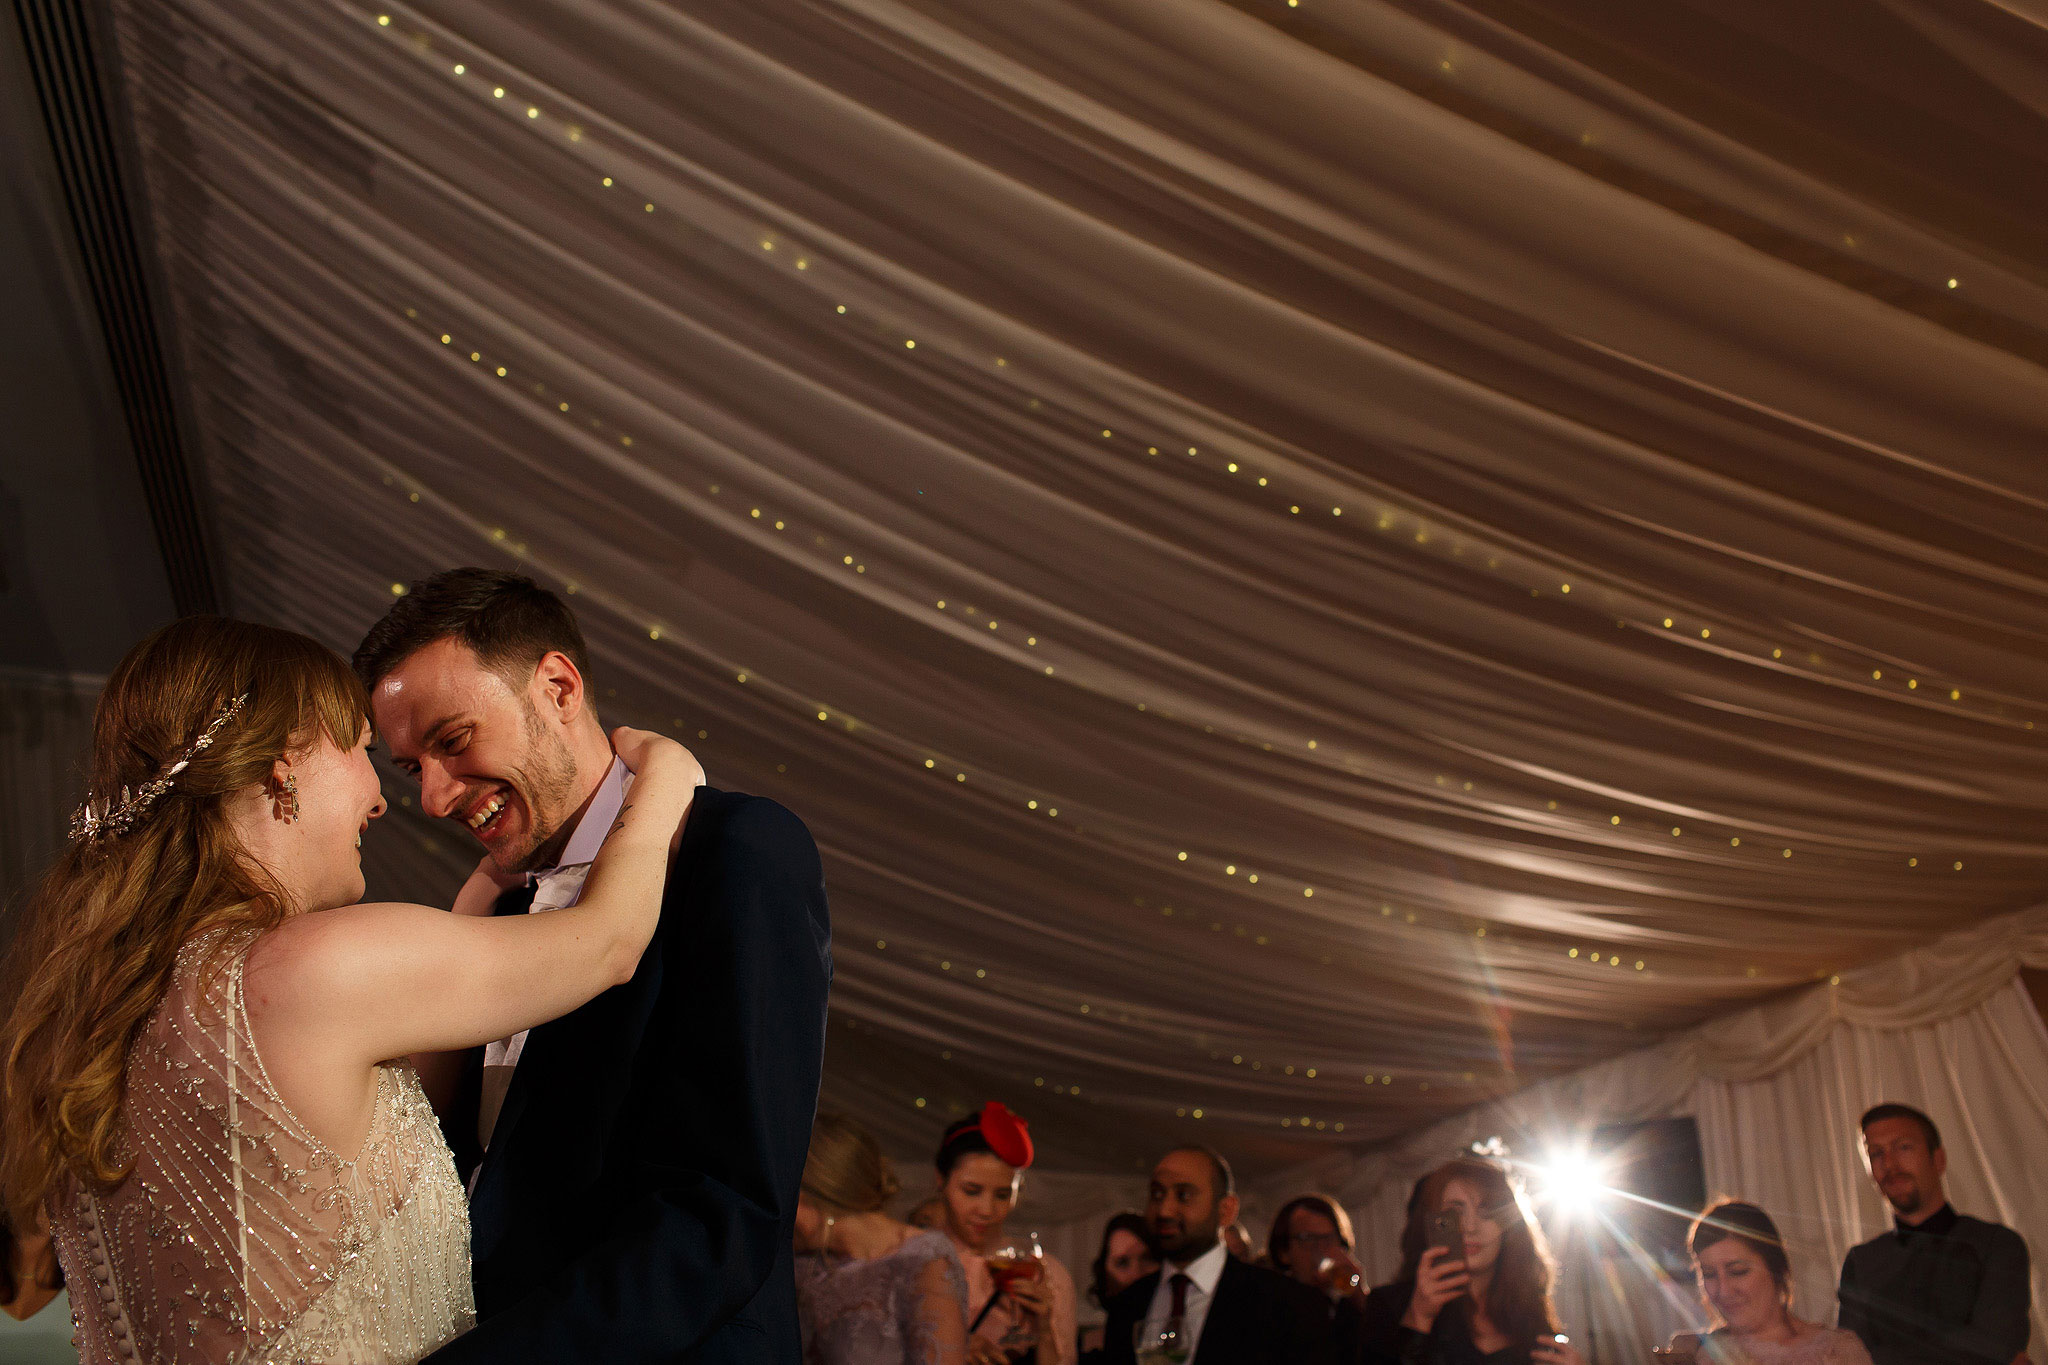 Bride and groom laughing during first dance in the Pavilion - The Villa at Wrea Green Wedding Photography - Toni Darcy Photography